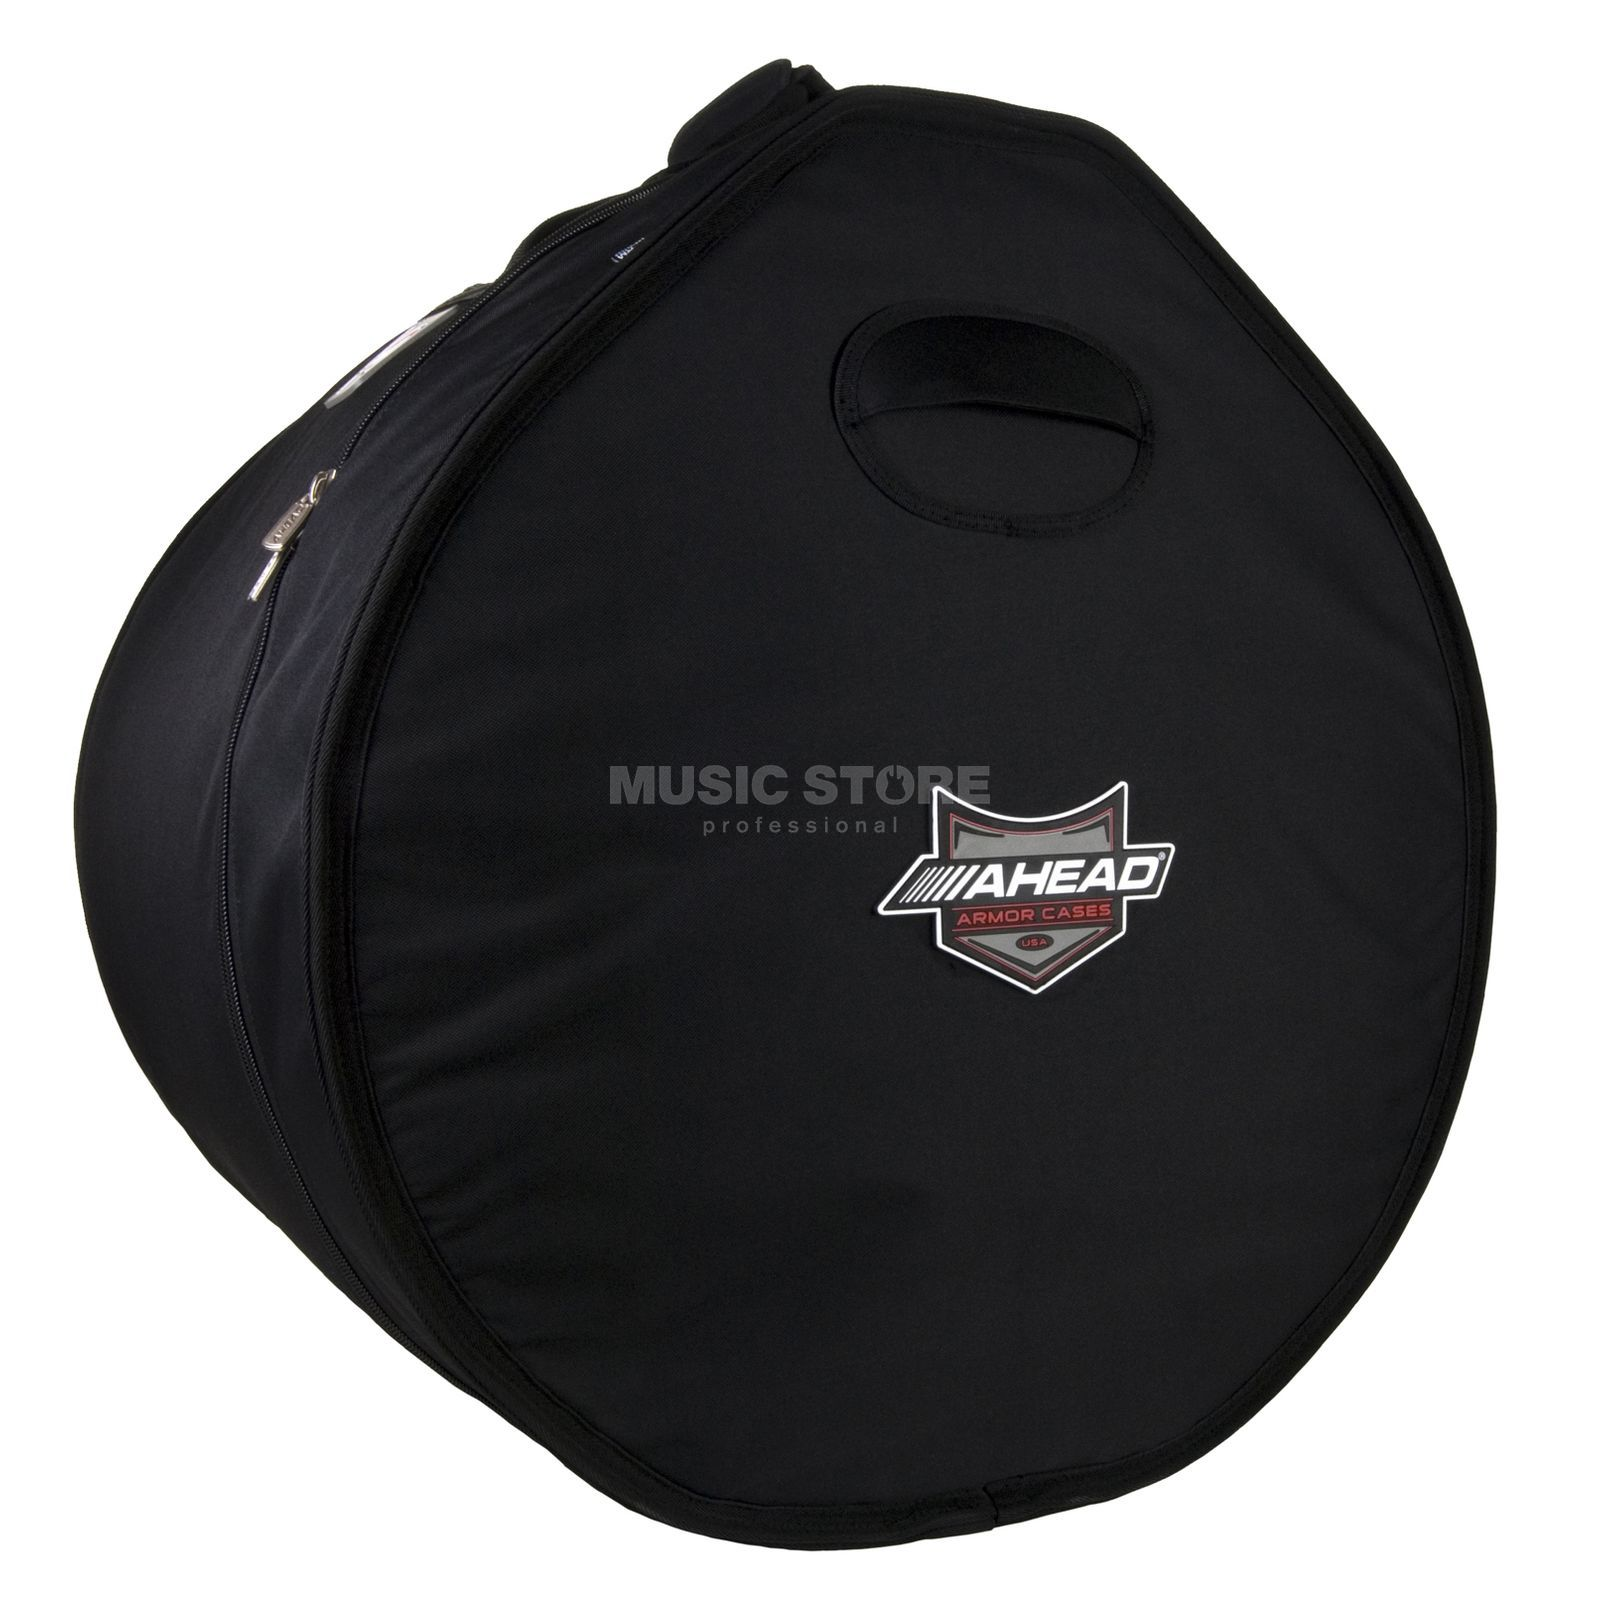 "Ahead Armor Cases BassDrum Bag 18""x14""  Product Image"